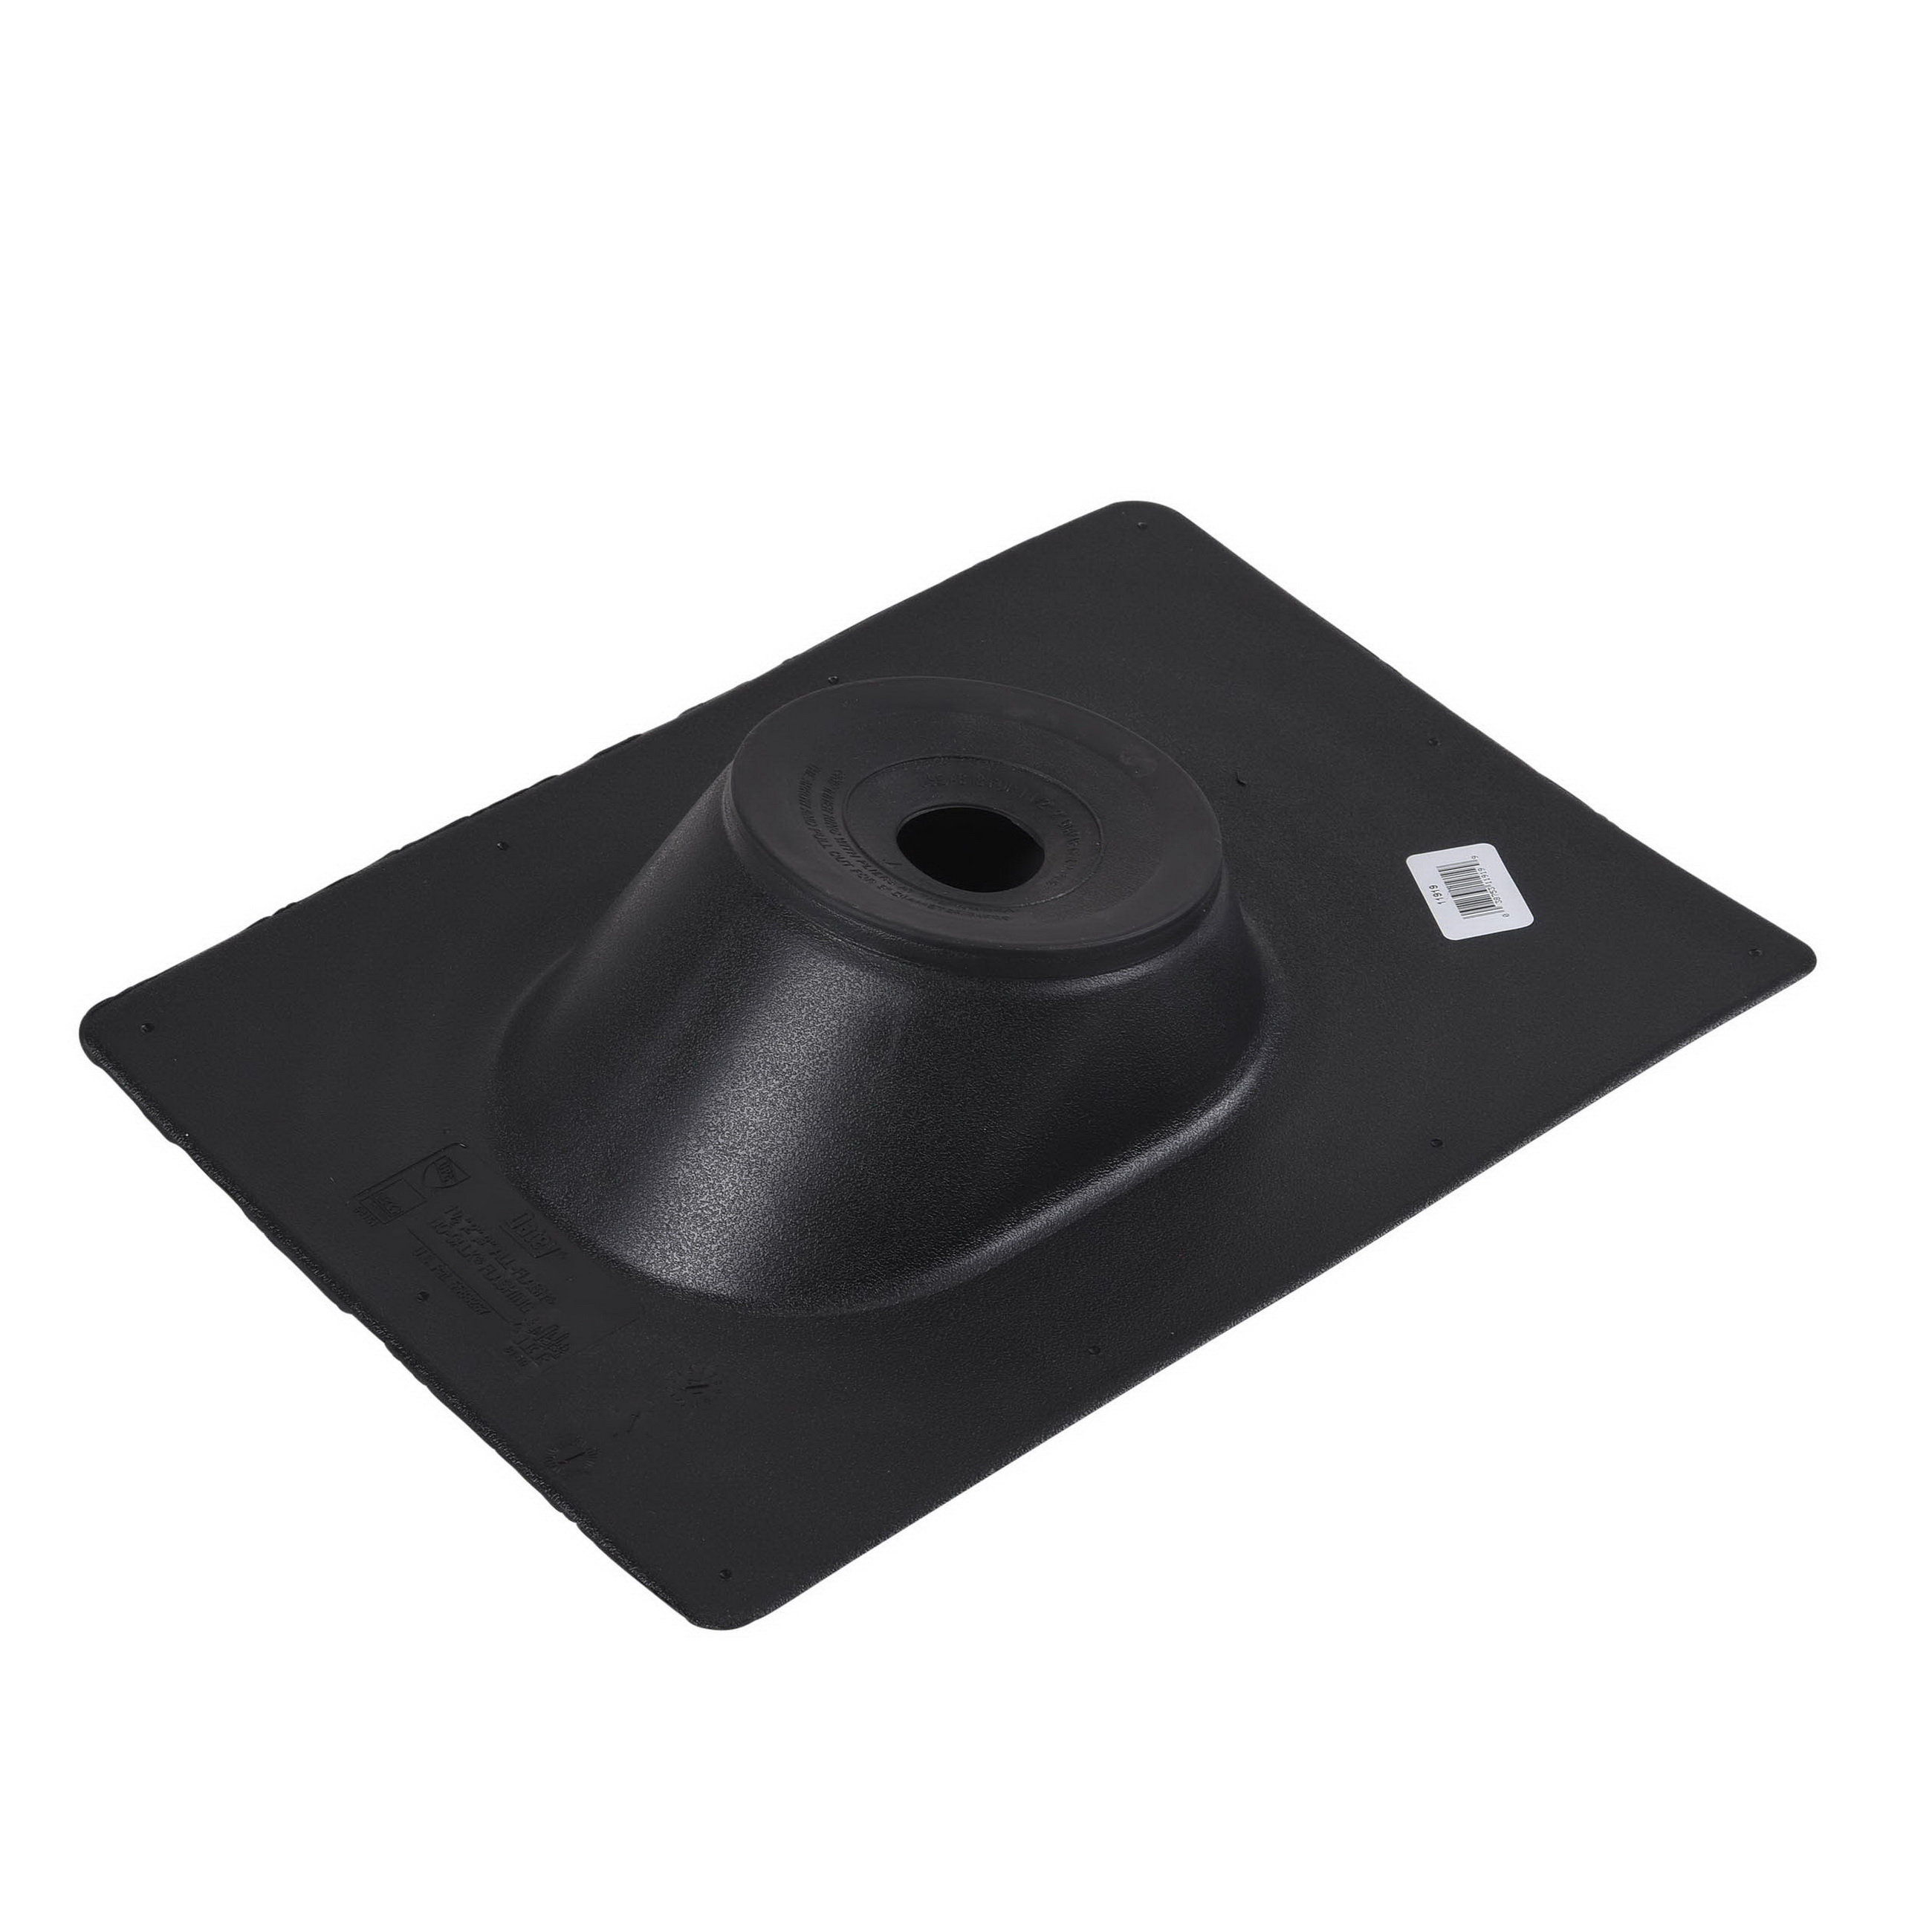 Oatey® All-Flash® No-Calk® 11919 Black Thermoplastic Base Roof Flashing, 1-1/2 - 3 in